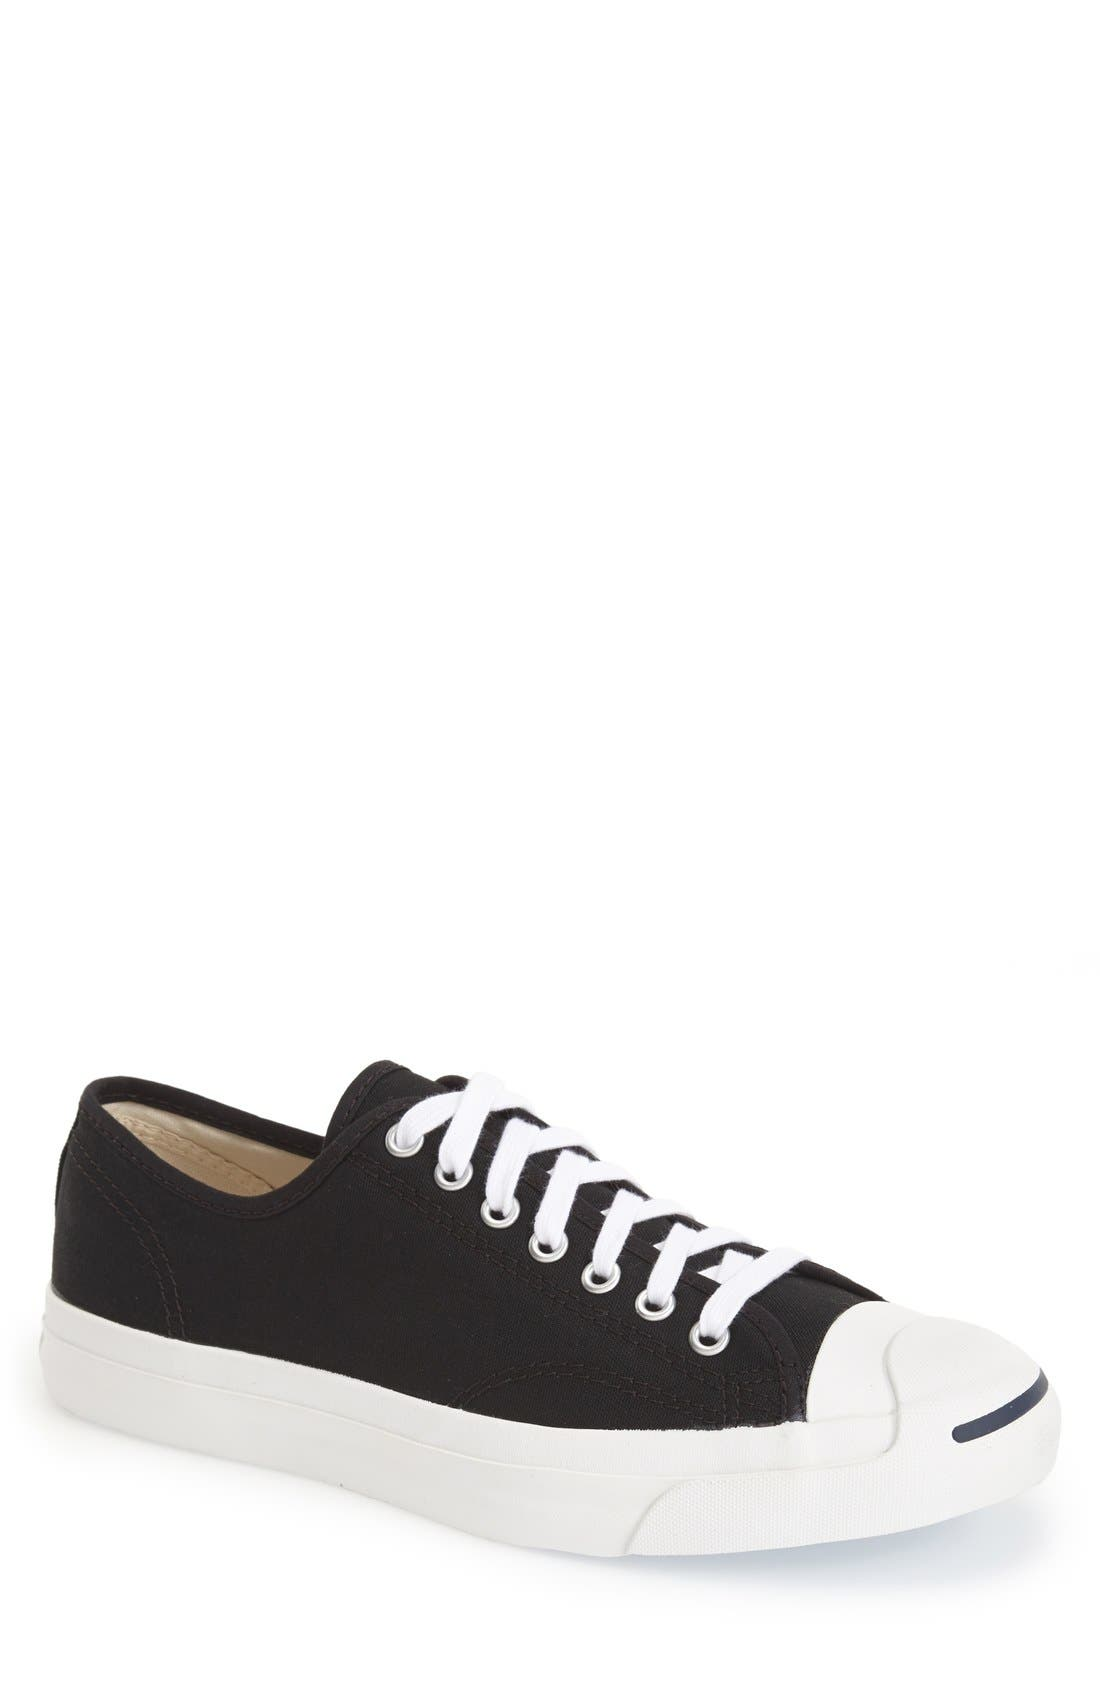 CONVERSE 'Jack Purcell' Sneaker, Main, color, BLACK